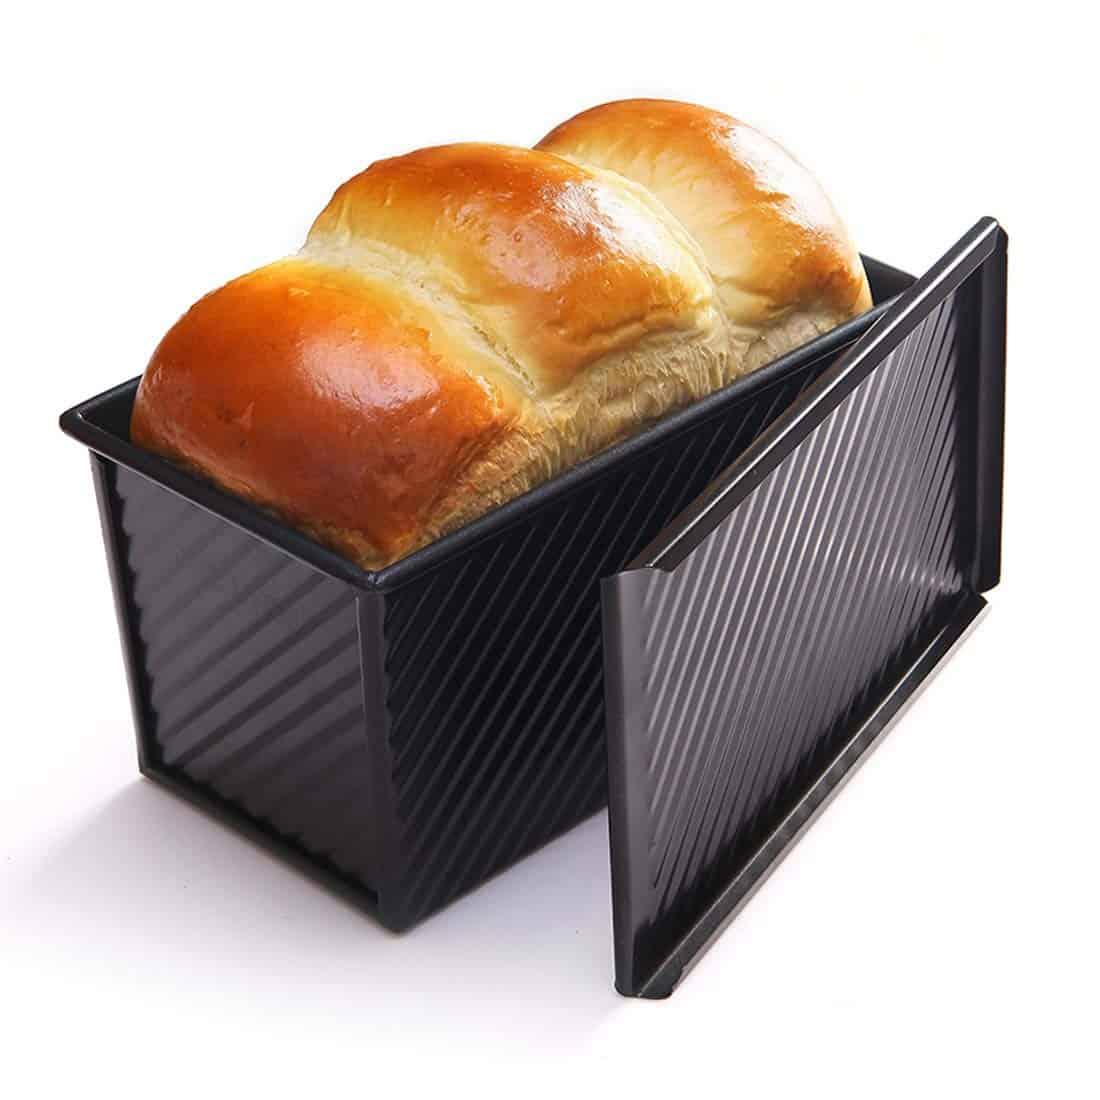 A classic Brioche Bread made into a loaf using pullman pan. Step by Step and video recipe